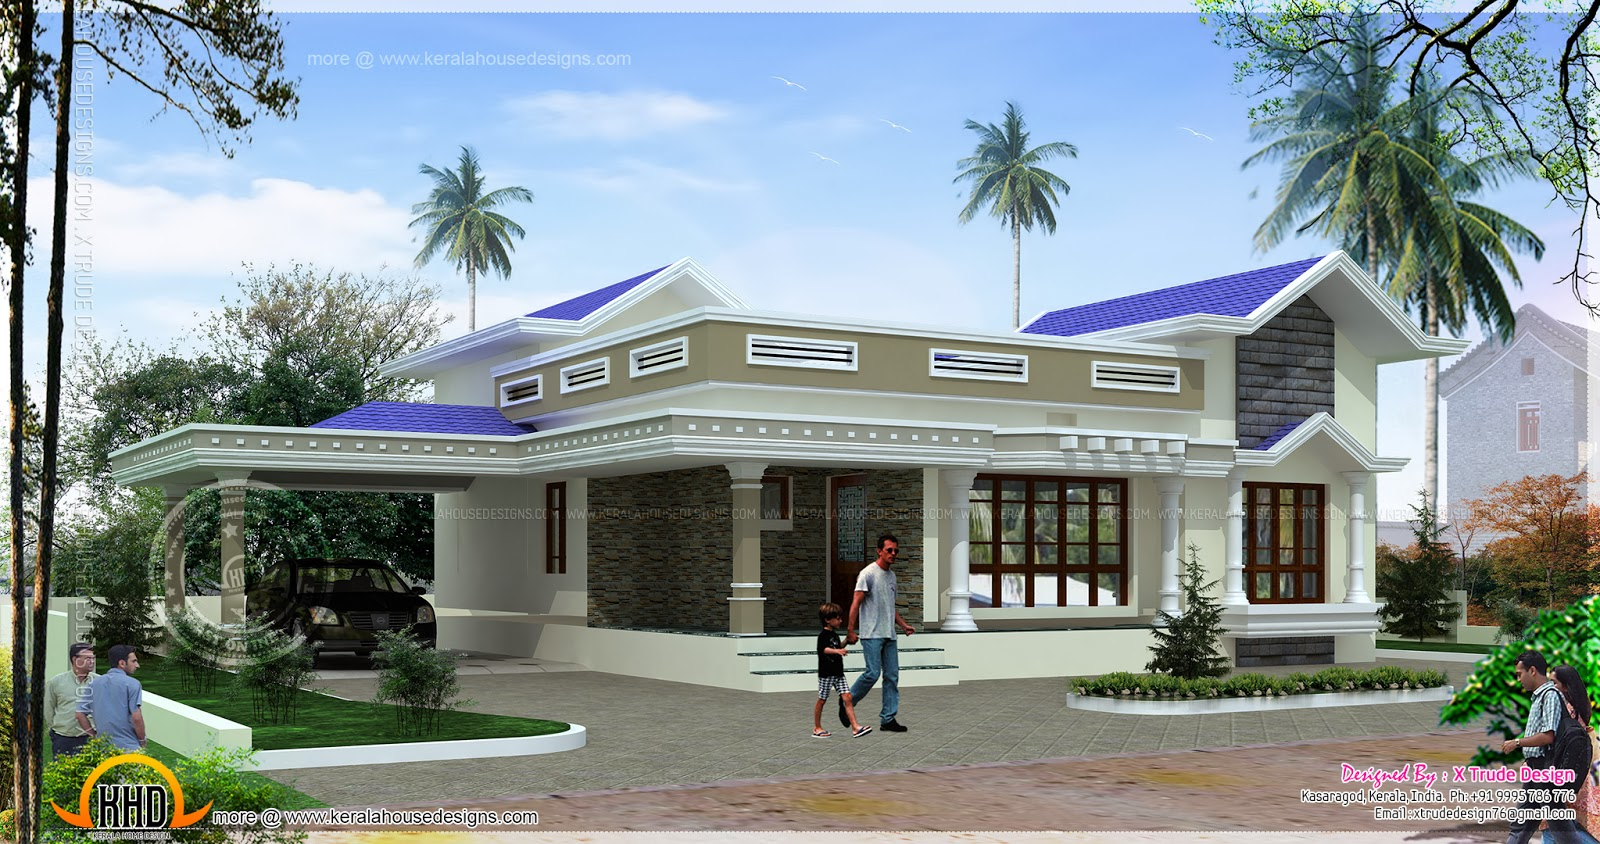 Single floor small house design kerala home design and for Kerala single floor house plans